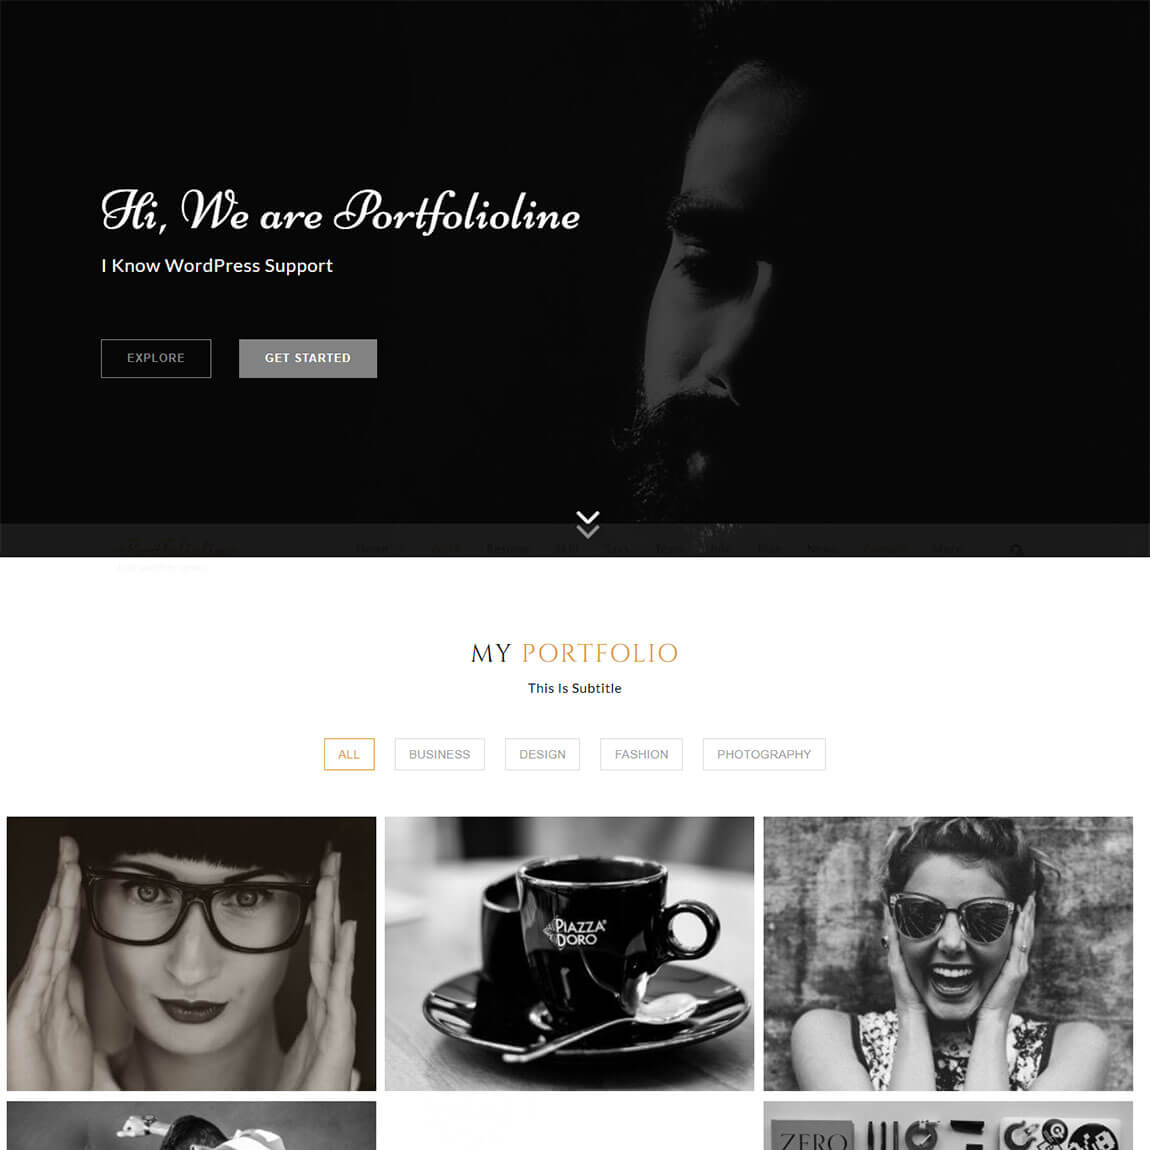 Portfolioline-wordpress-portfolio-theme